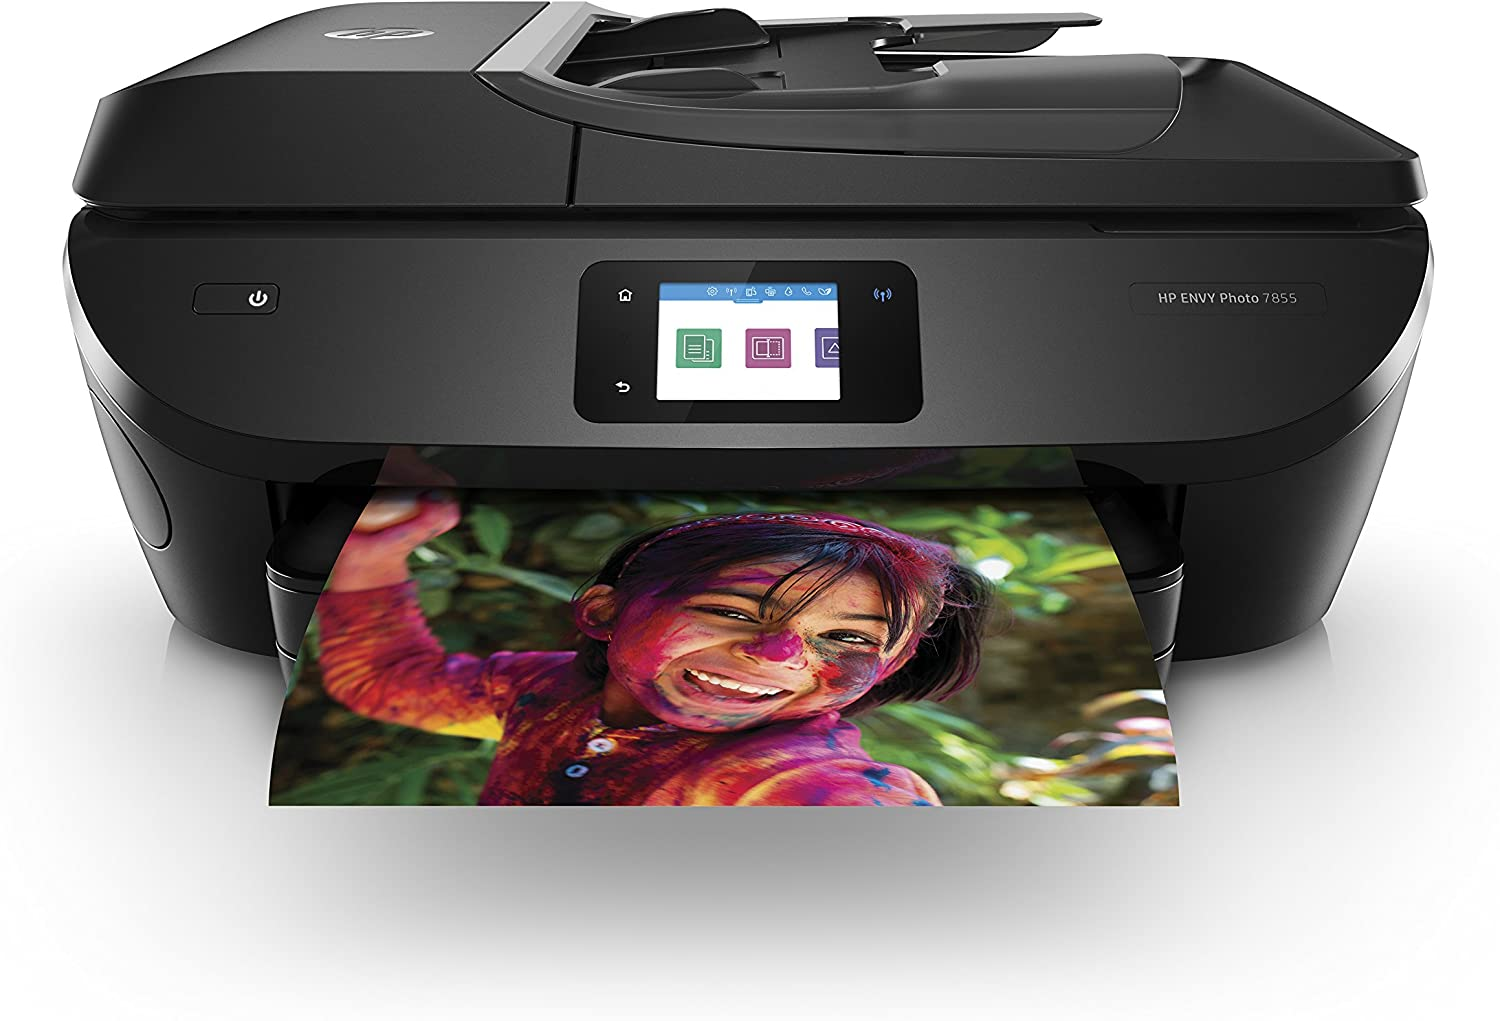 HP ENVY Photo 7855 All in One Photo Printer with Wireless Printing, HP Instant Ink ready, Works with Alexa (K7R96A): Electronics